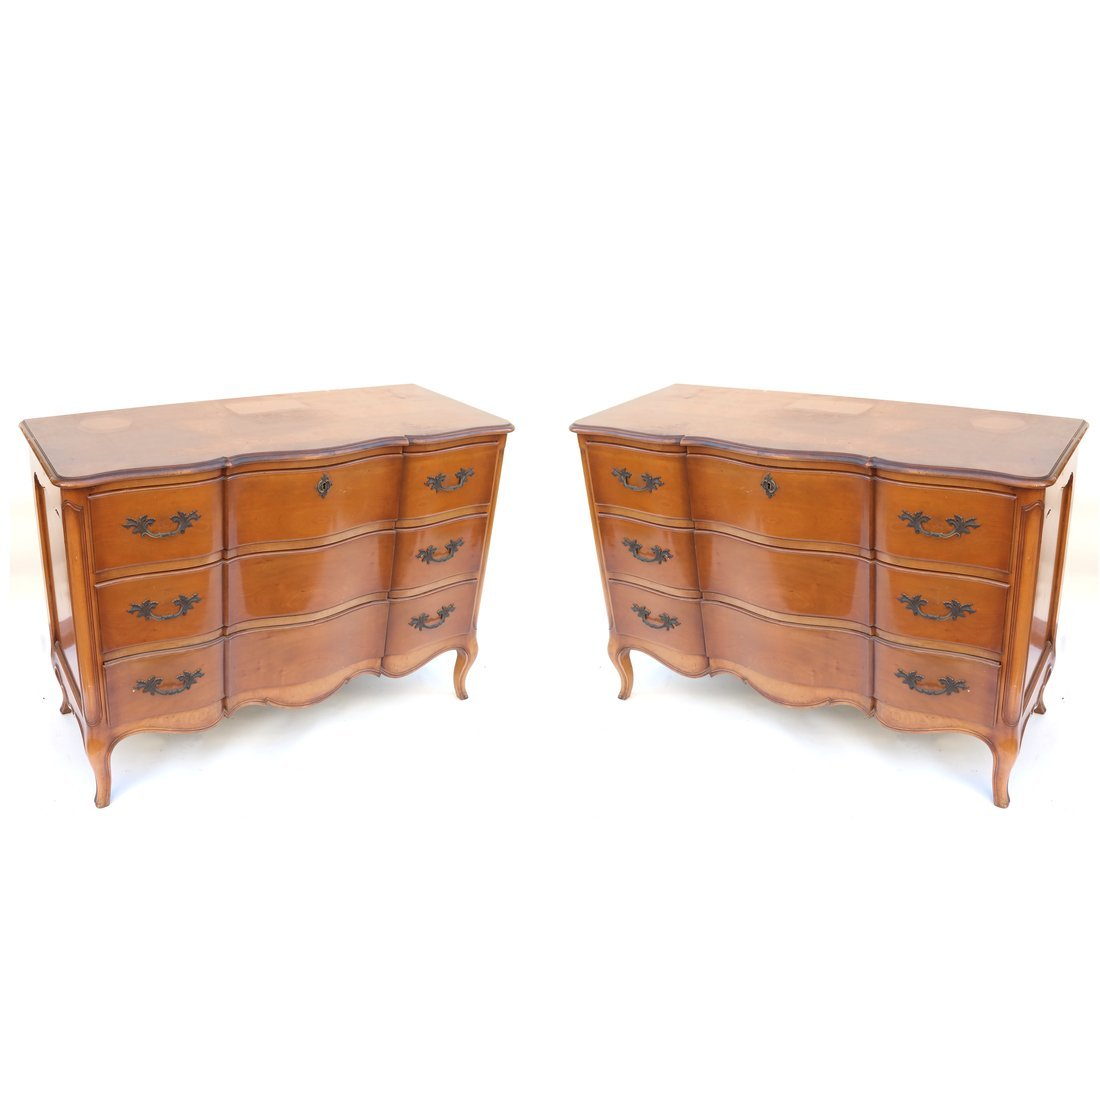 Pair of Louis XV Style Mahogany Chests